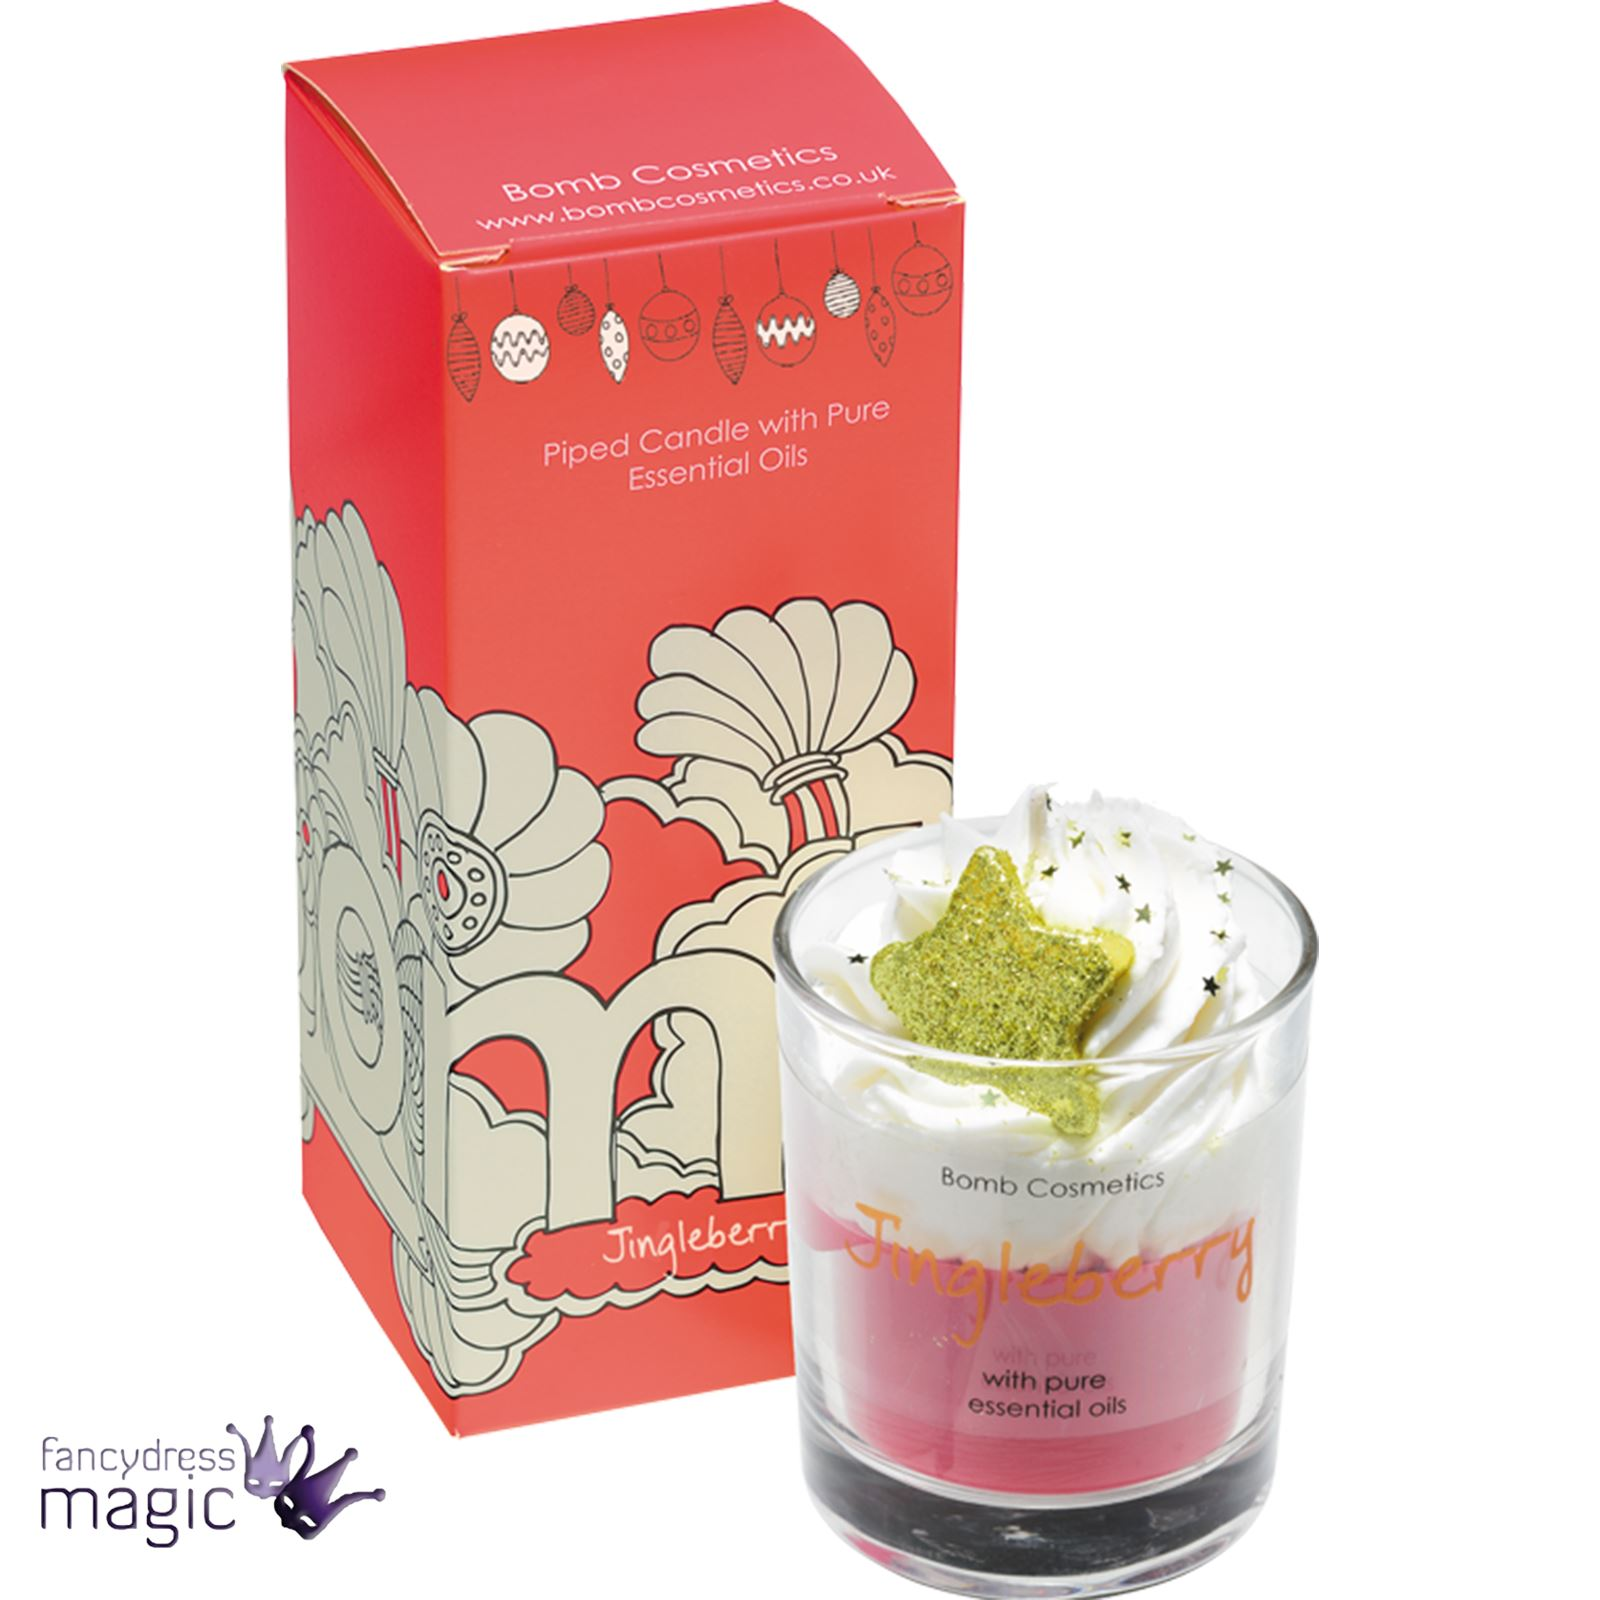 Bomb-Cosmetics-Handmade-Piped-Glass-Candle-Vegan-Pure-Essential-Oils-Boxed-Gift thumbnail 18